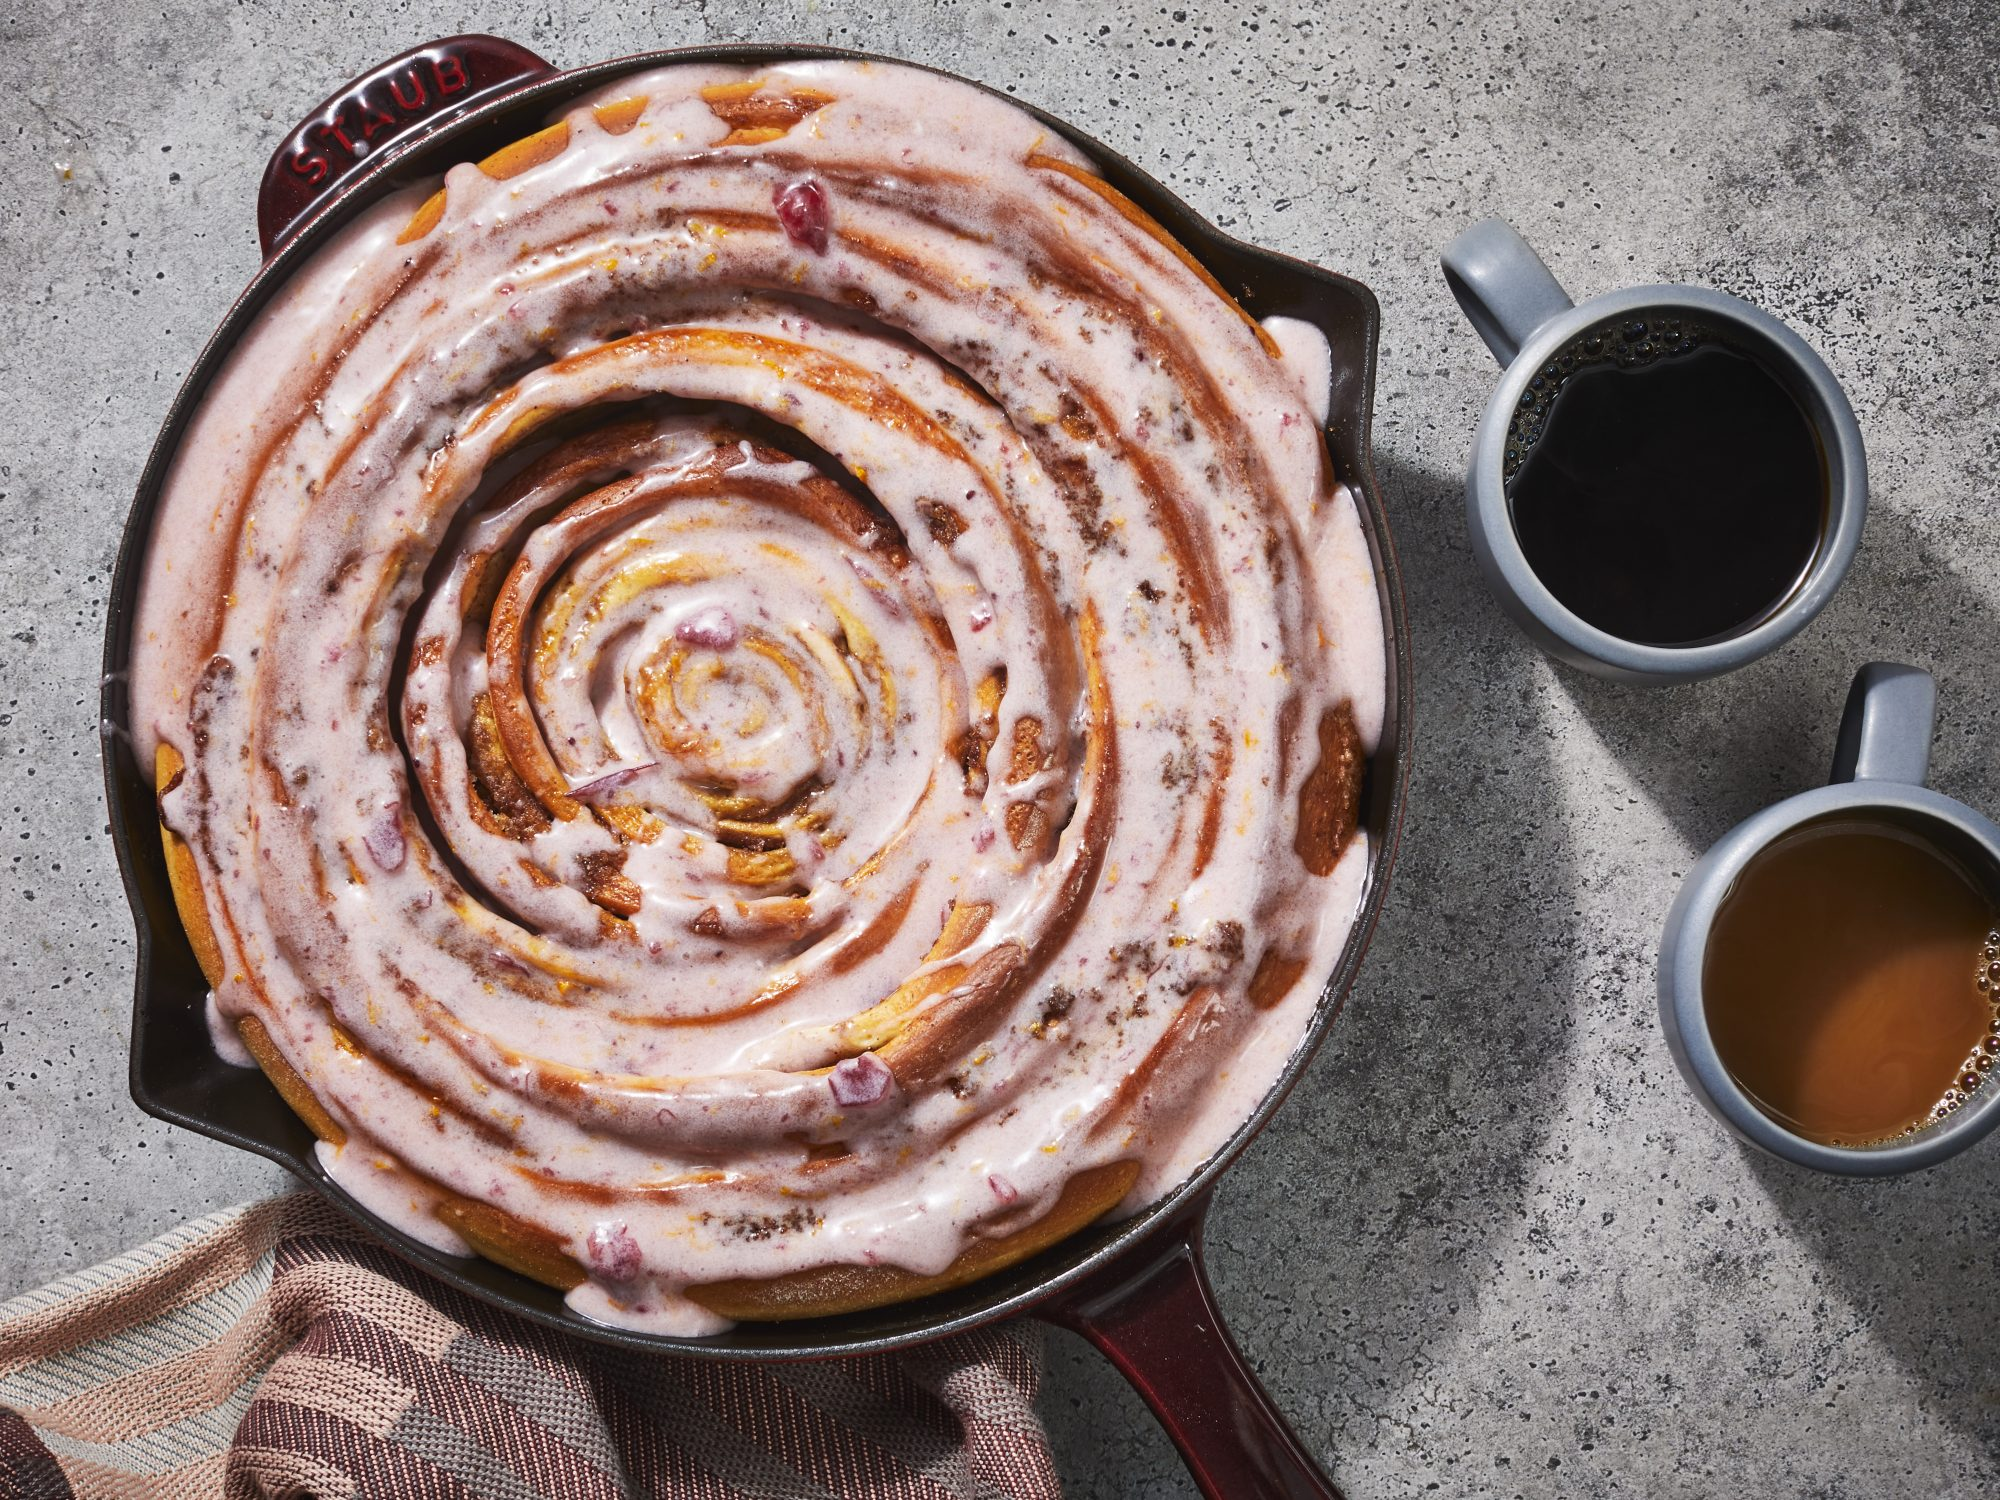 mr - Skillet Cinnamon Roll With Cranberry Glaze Image